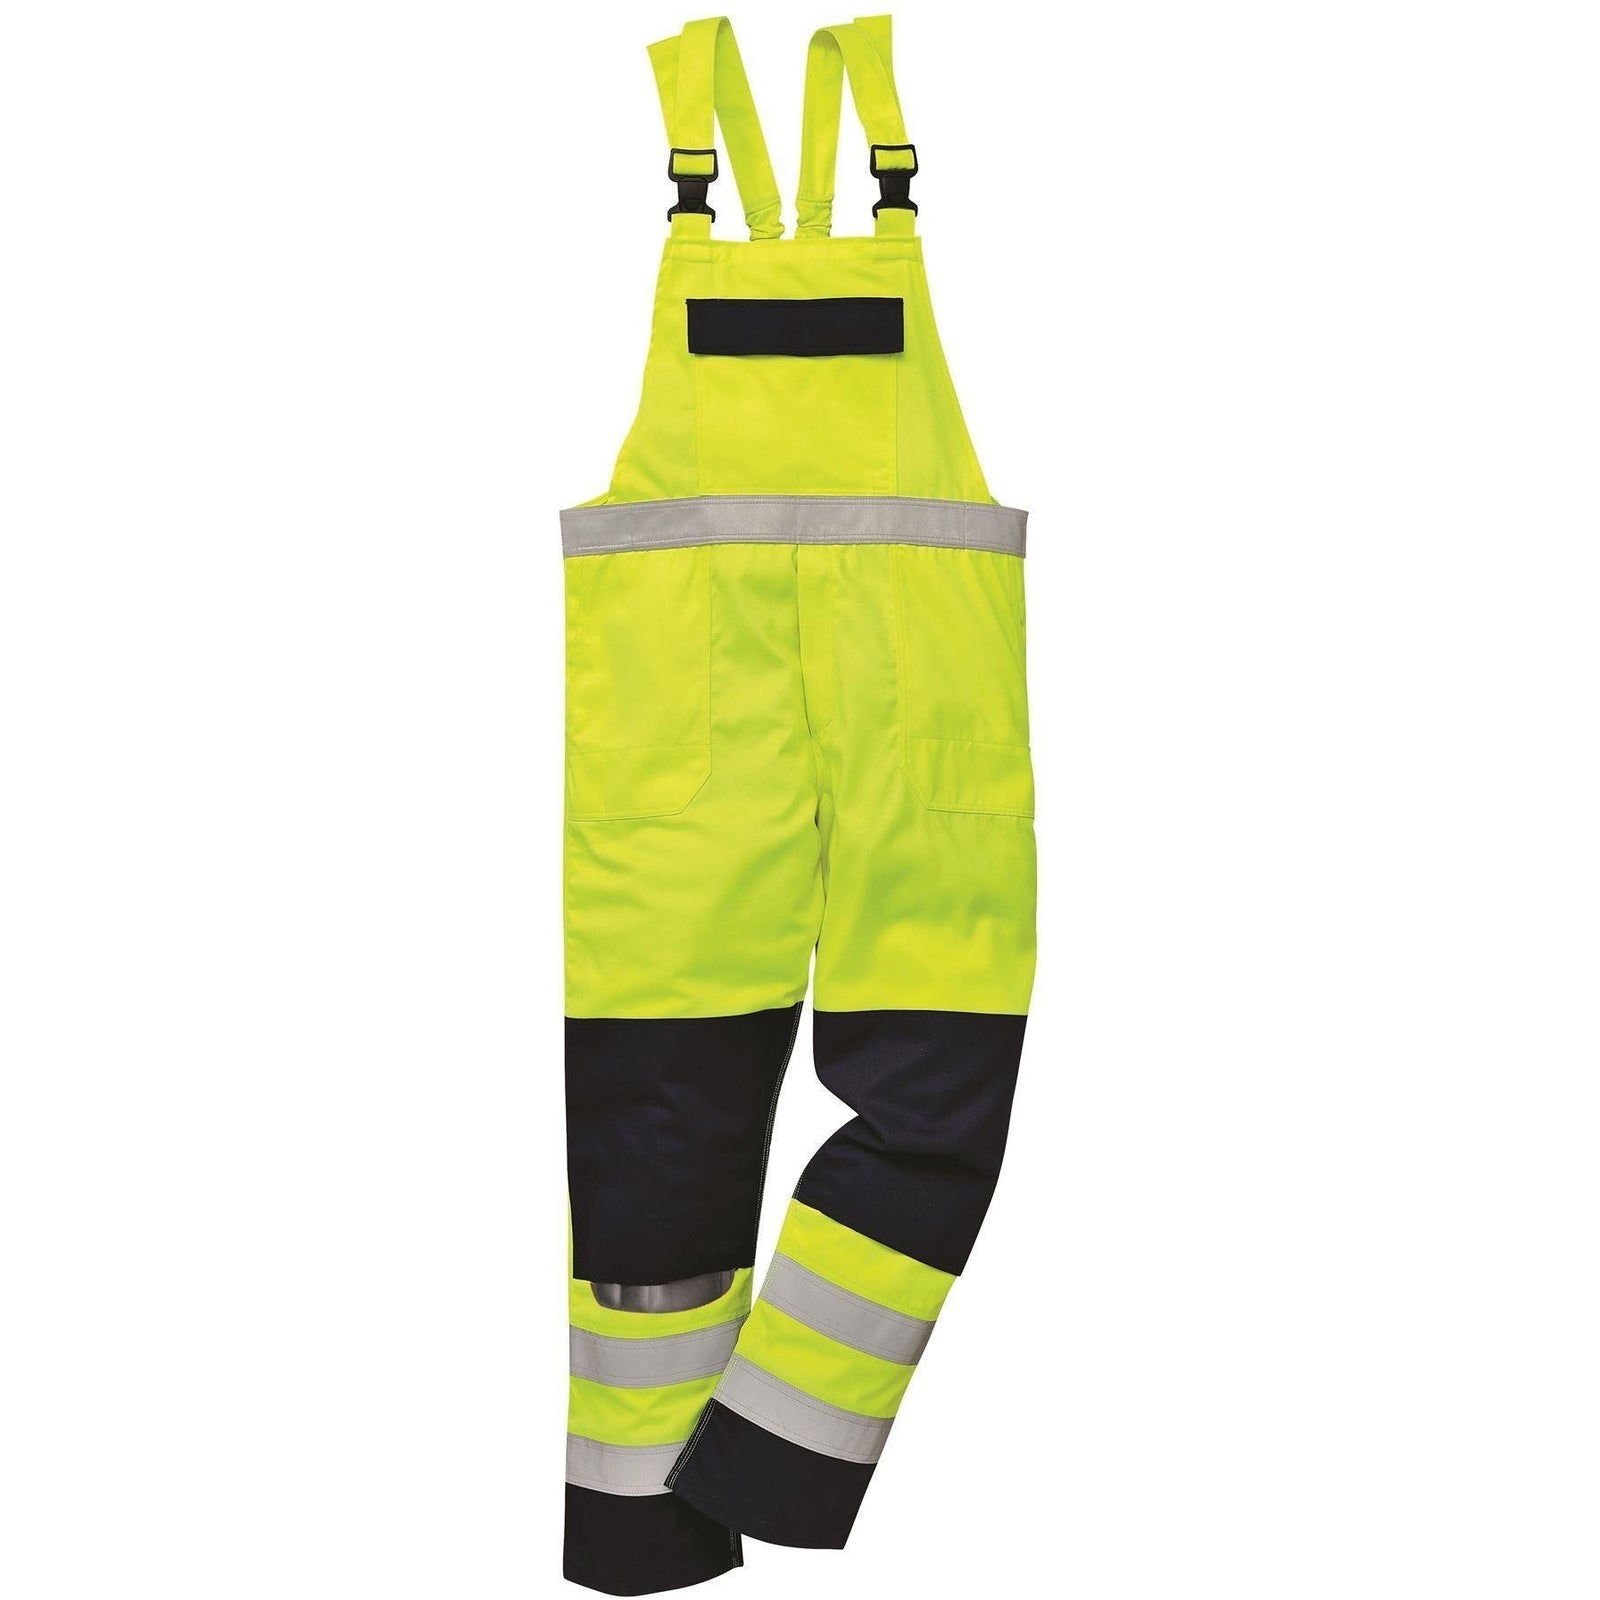 Portwest Hi-Vis Multi-Norm Bib and Brace FR63 - reid outdoors